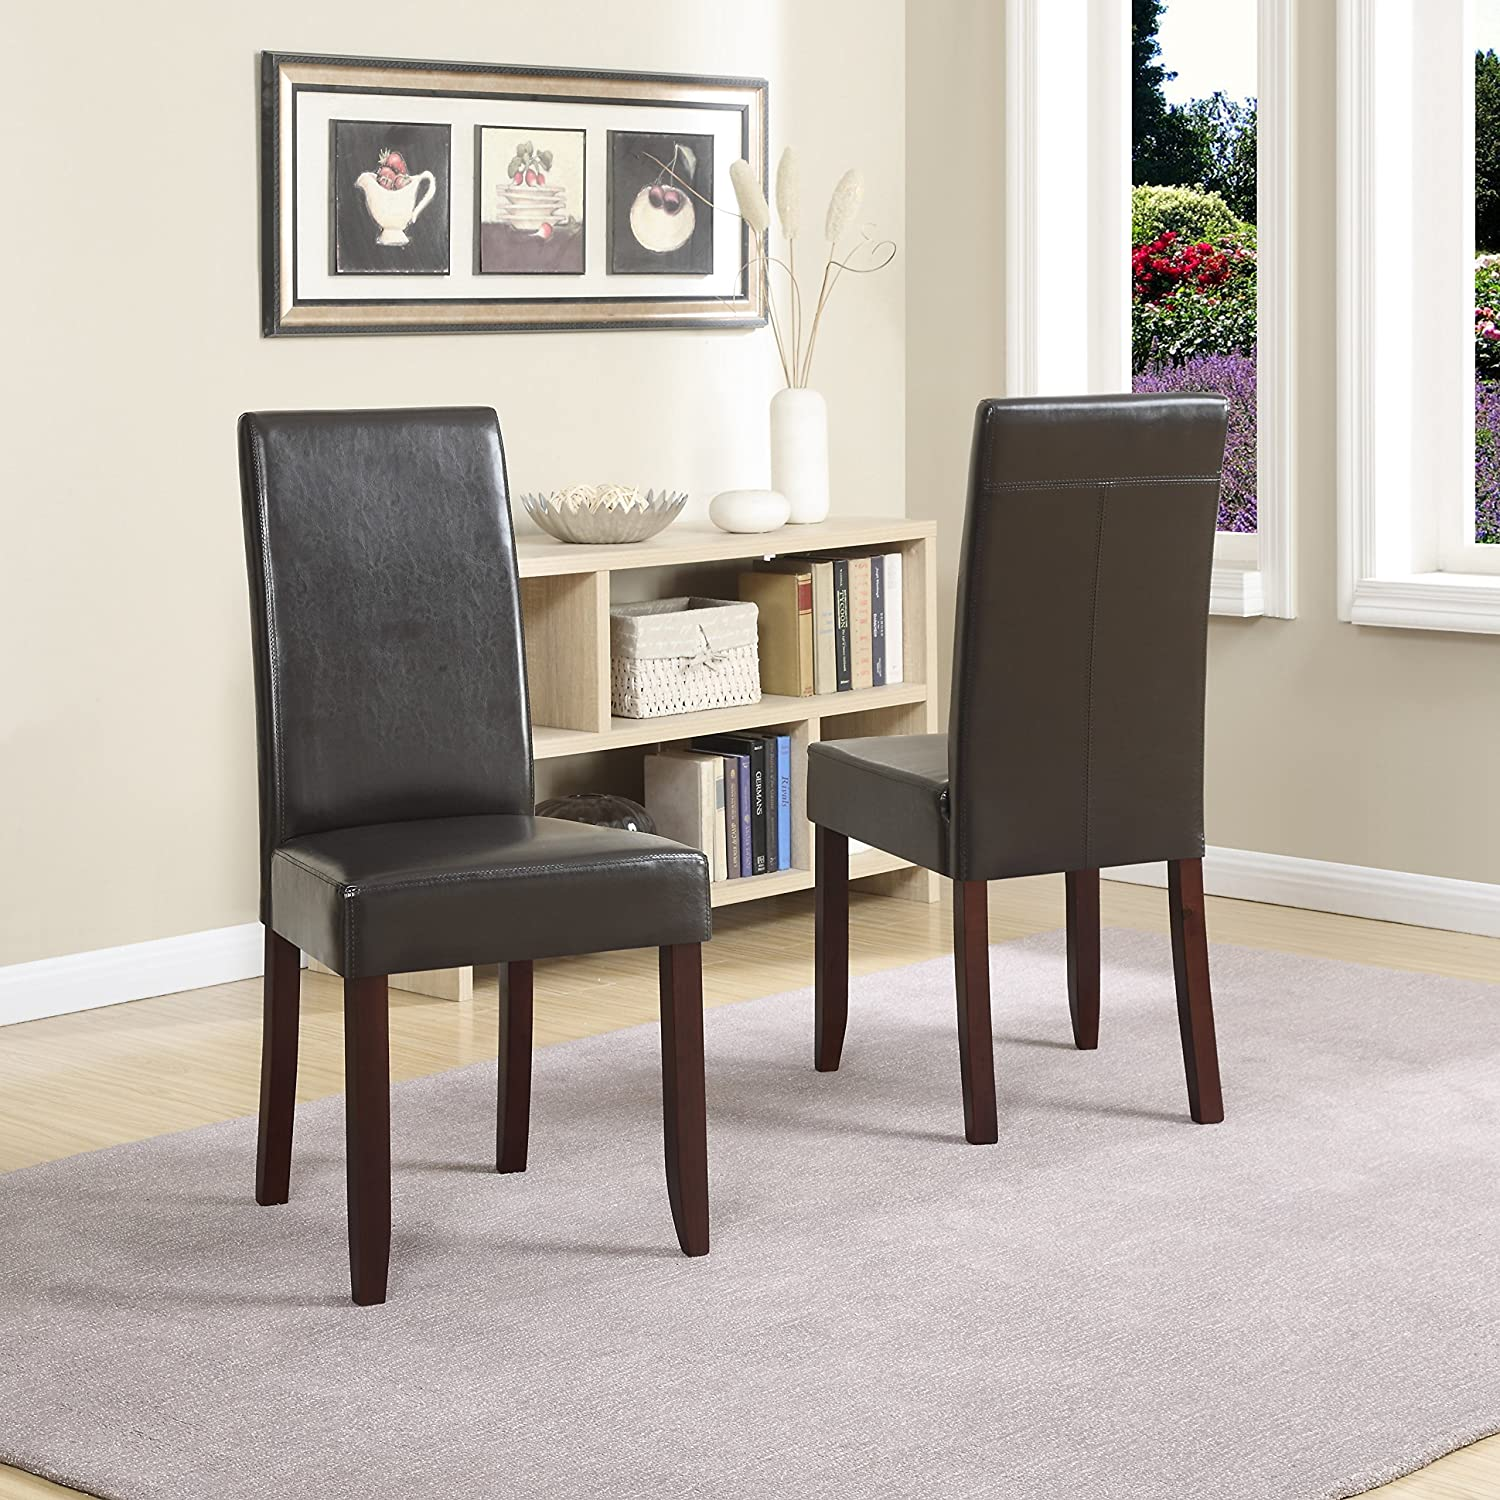 Simpli Home Acadian Collection Parson Chair Pu Leather 2 Pack